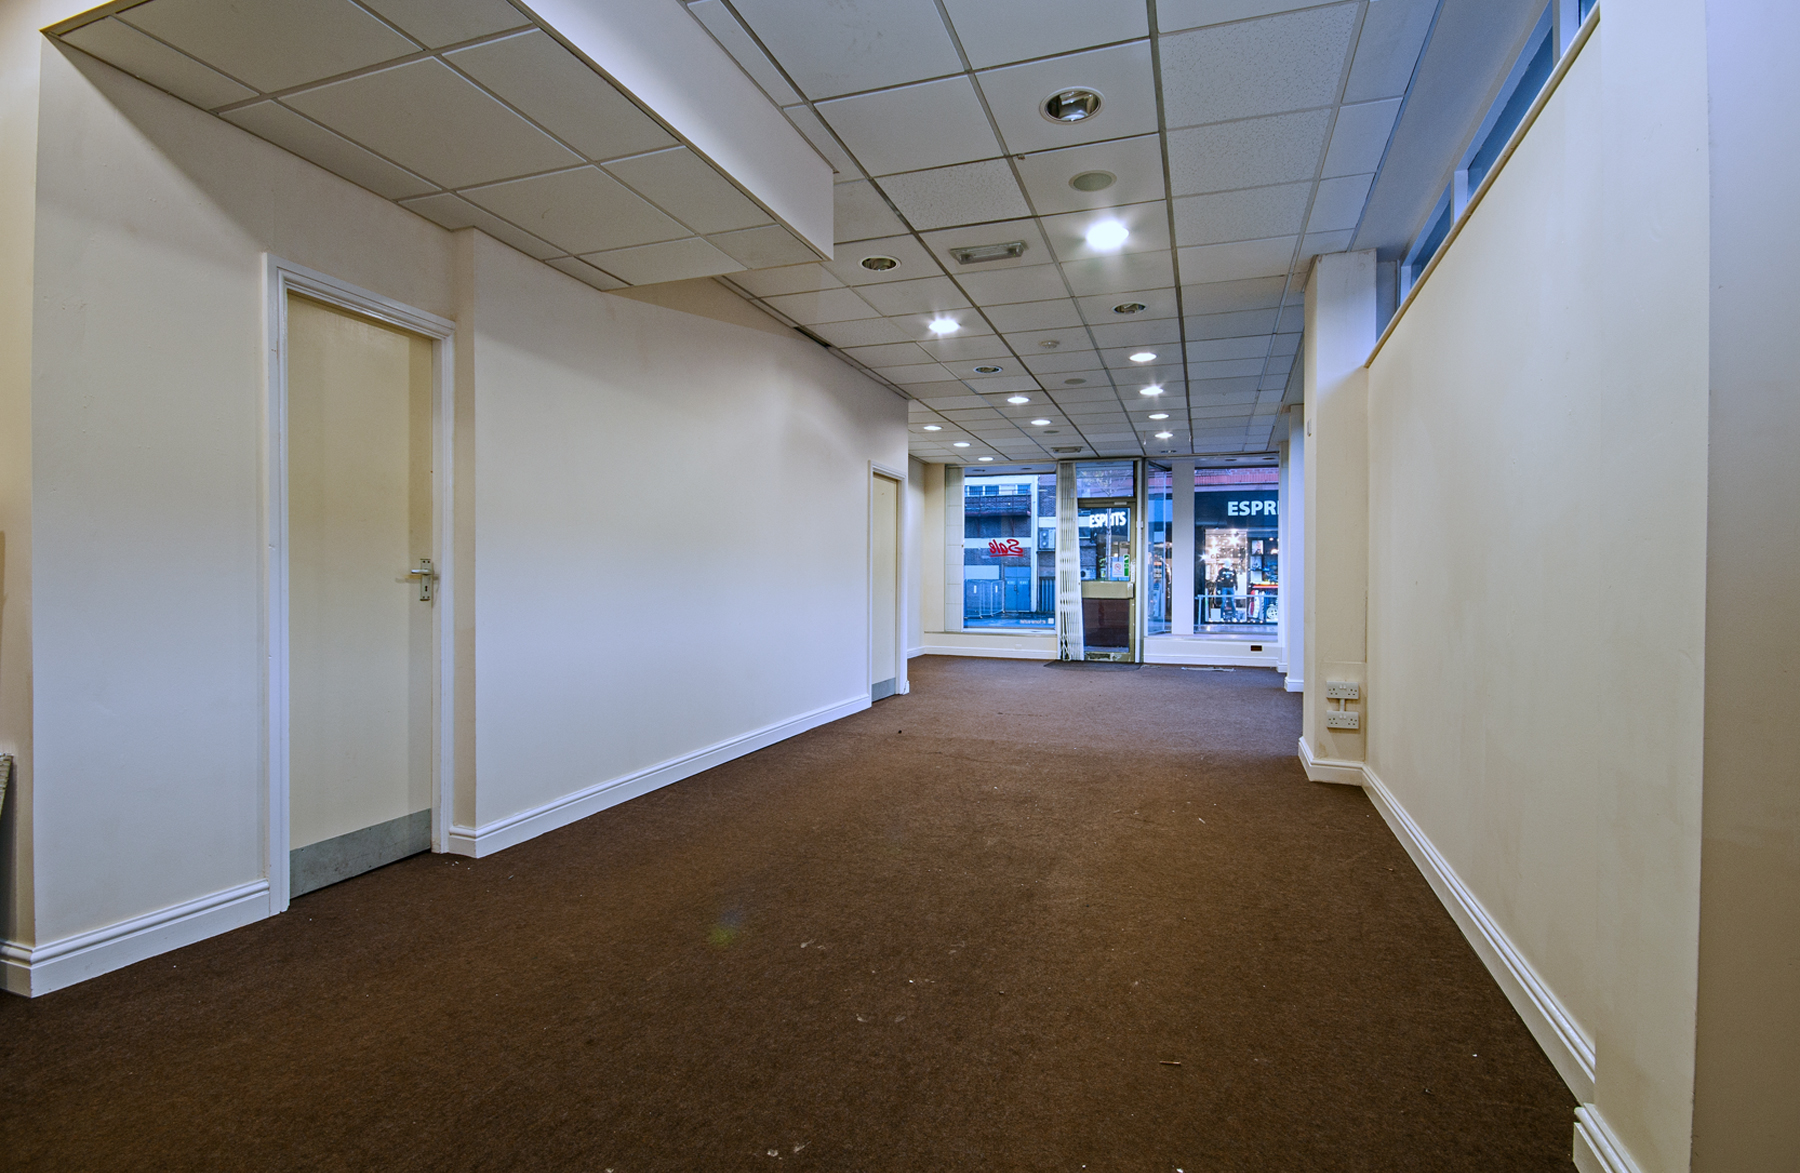 princes st 64 stockport ground  floor.jpg